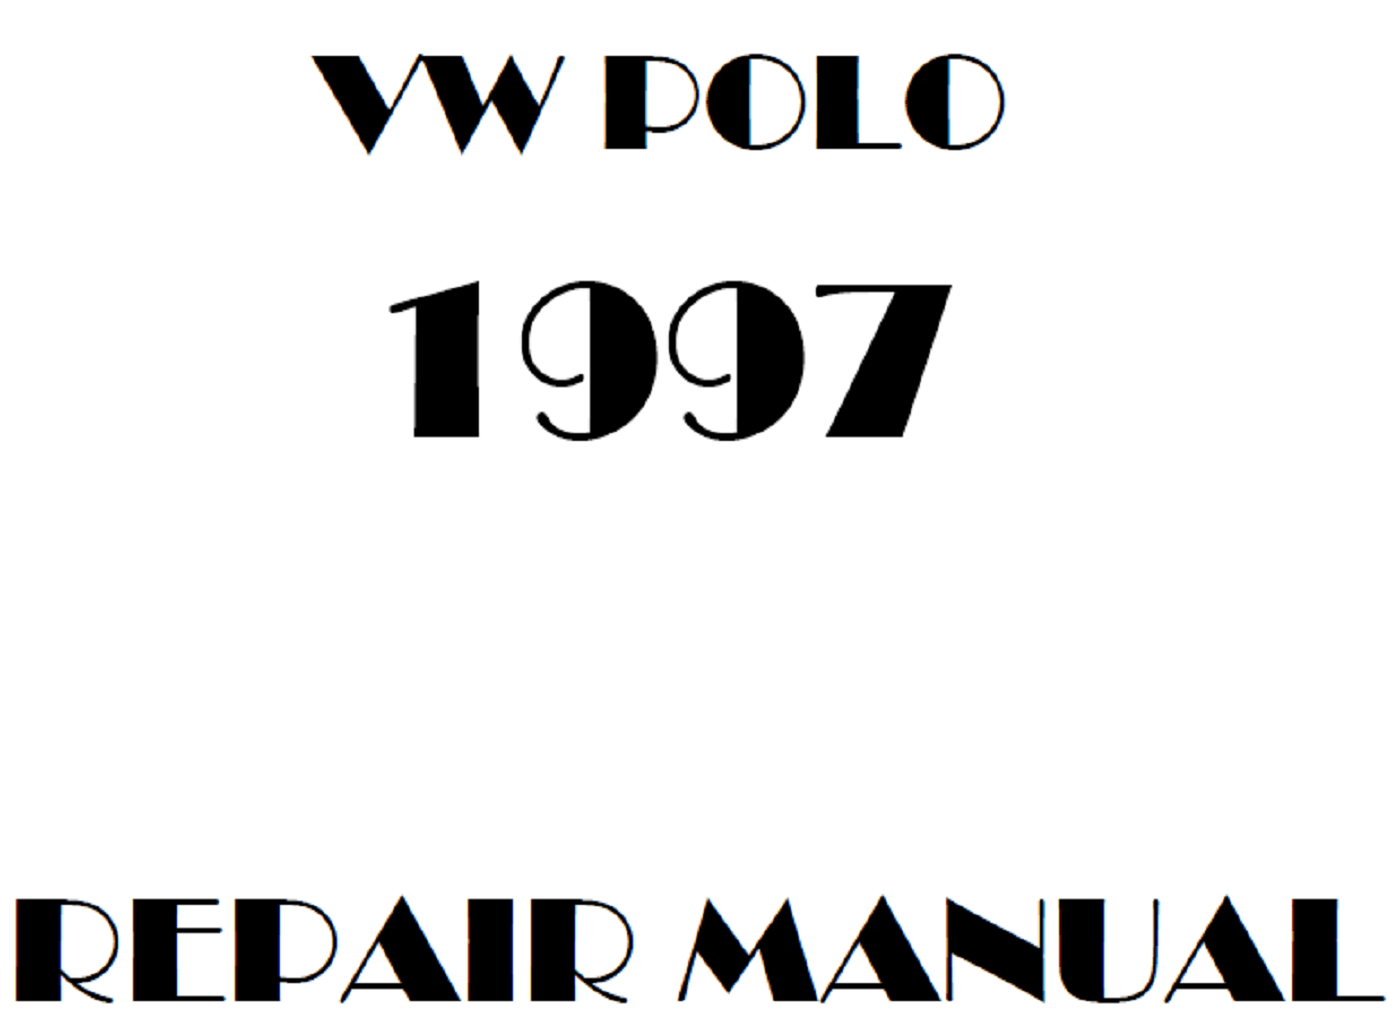 1997 Volkswagen Polo repair manual